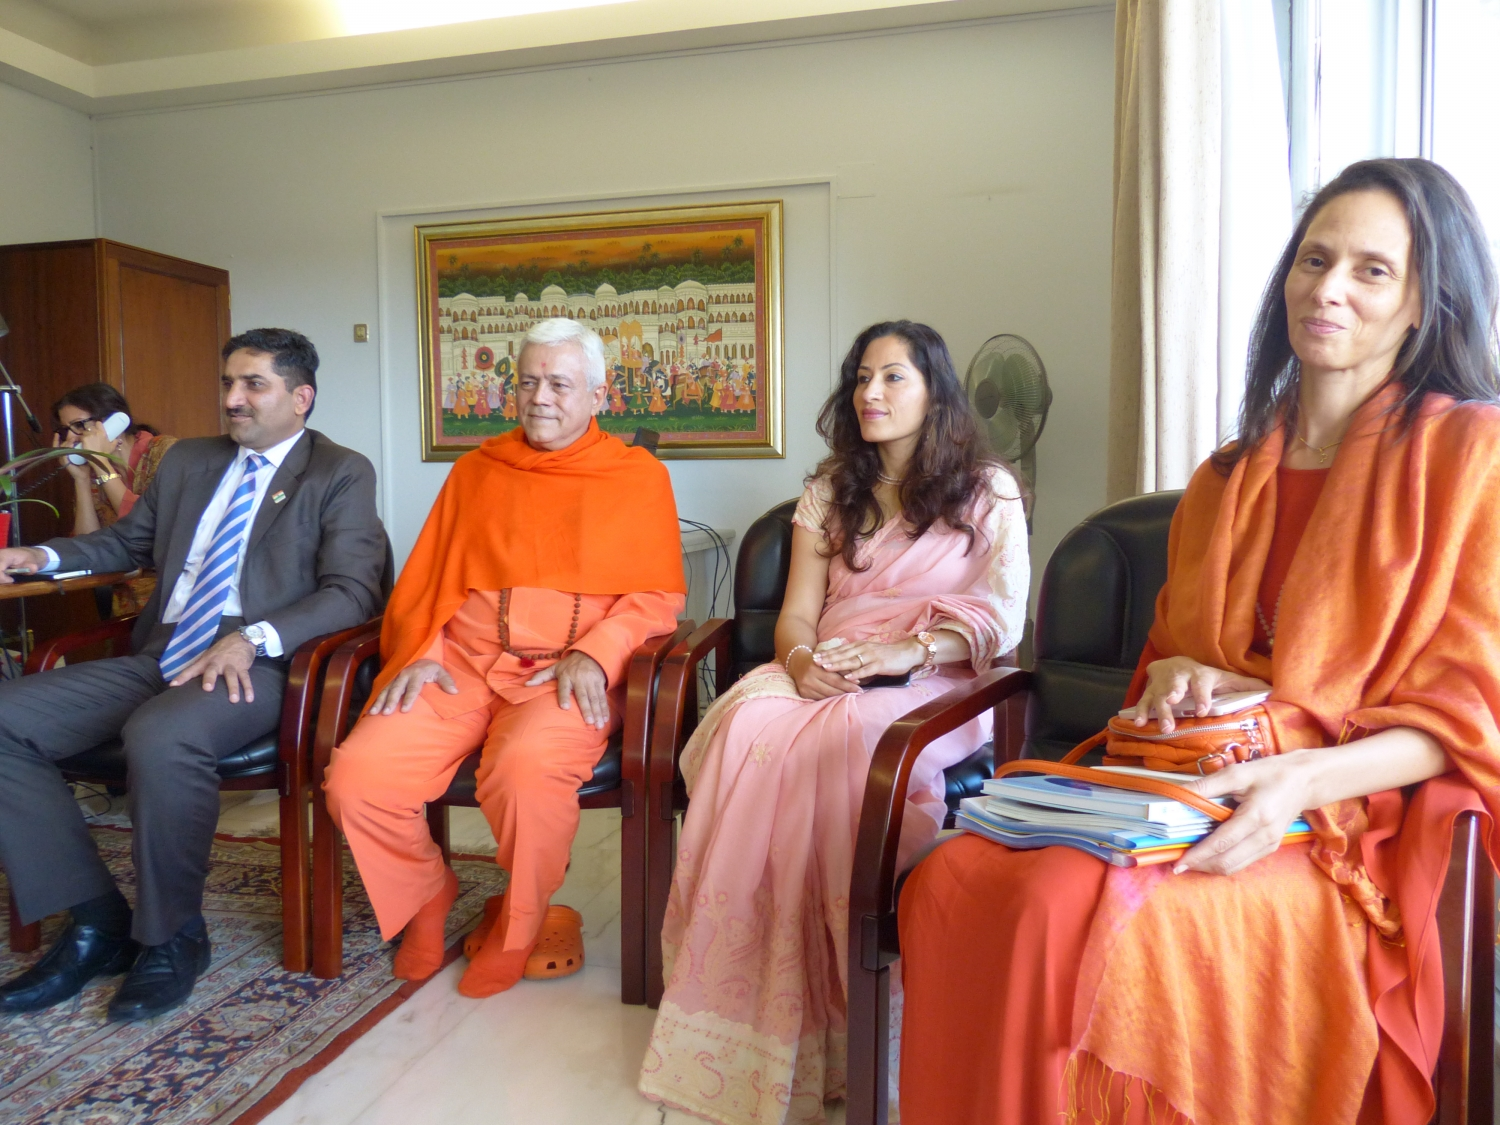 Visit of H.H. Jagat Guru Amrta Súryánanda Mahá Rája at the Embassy of India at the invitation of the Ambassador of India in Portugal Mrs. K. Nandini Singla - 2016, October, 13th